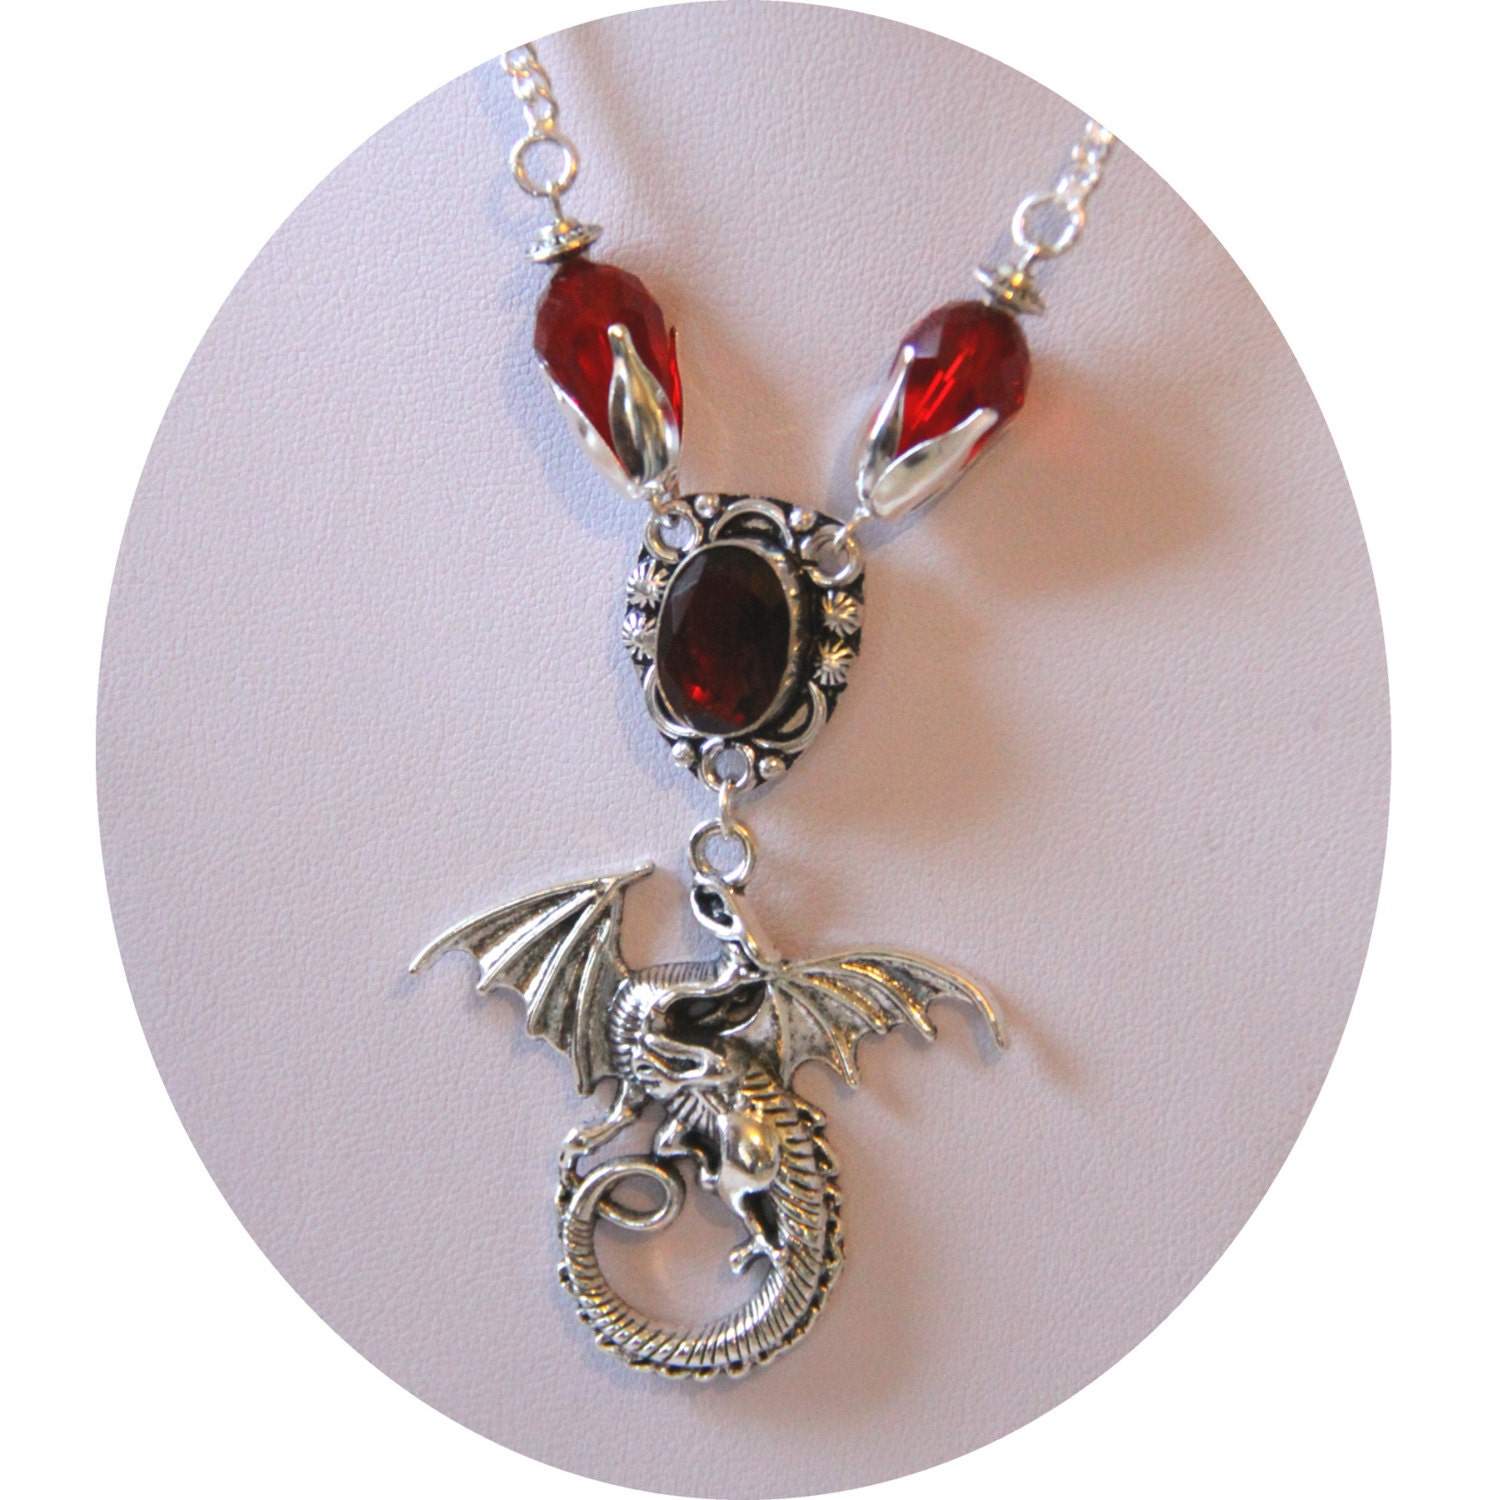 necklace amazon com drgn nck goods graceful dragon got dp jewelry red